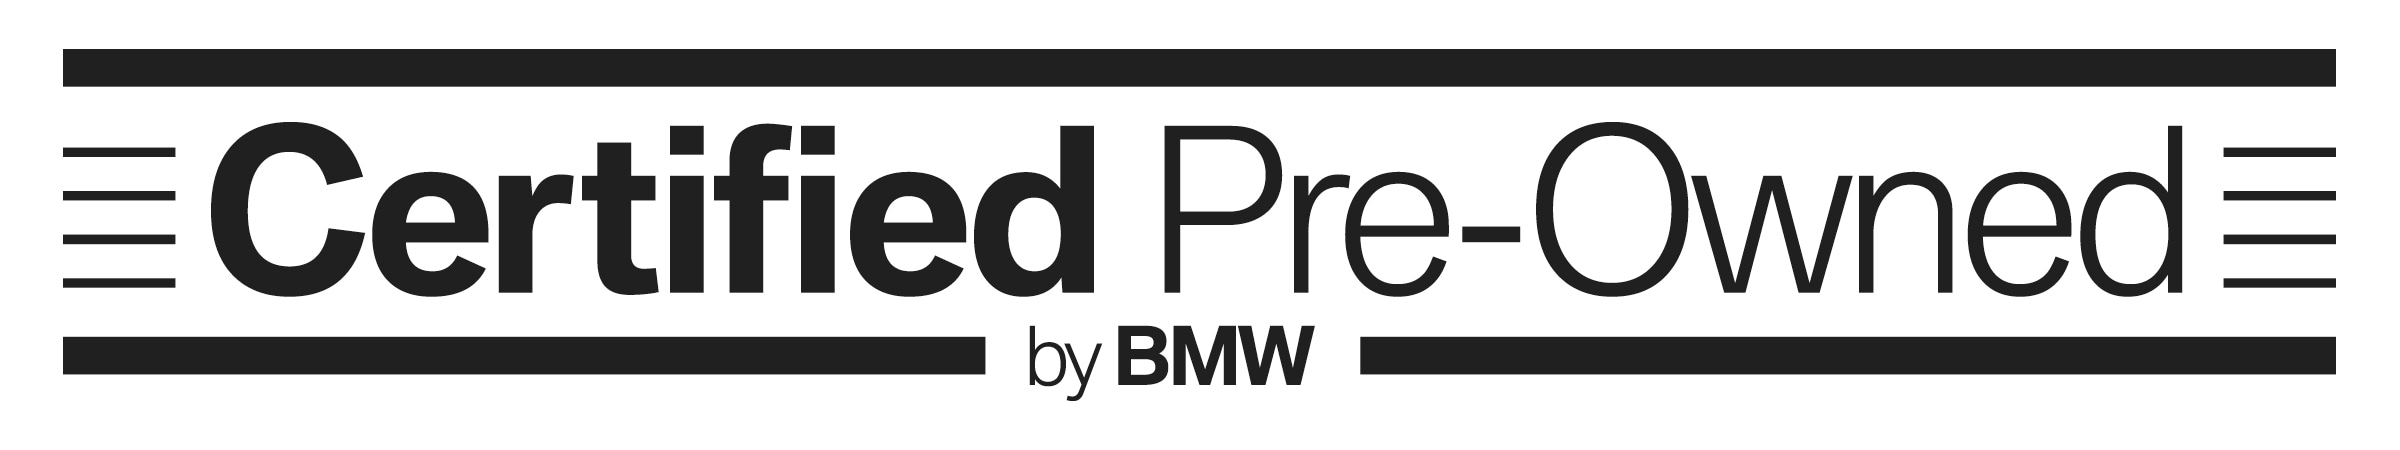 Bmw Pre Owned >> Weatherford Bmw Berkeley Ca Center Of Excellence Serving The